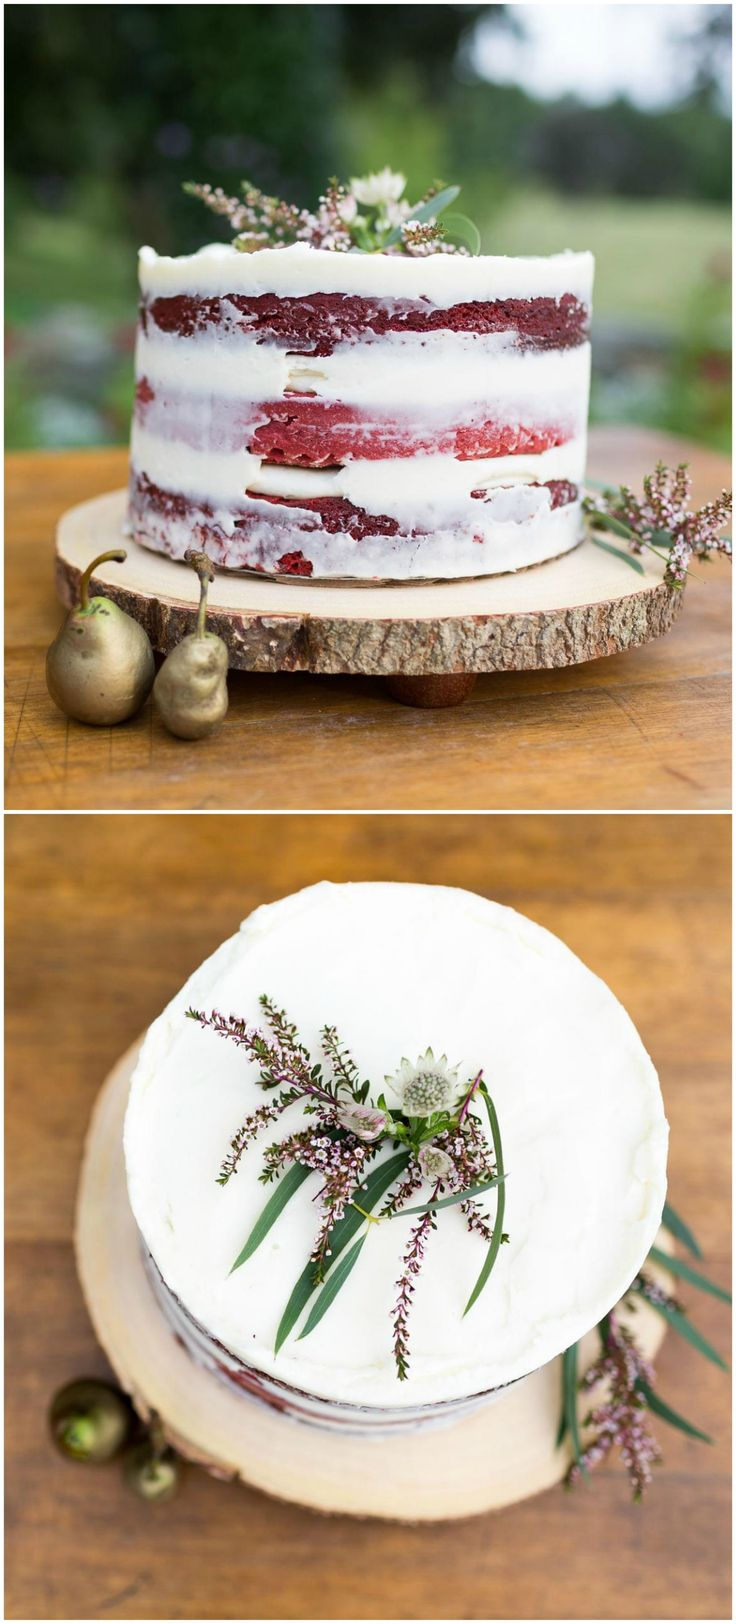 wedding cakes red velvet best 25 velvet wedding cake ideas on 25359